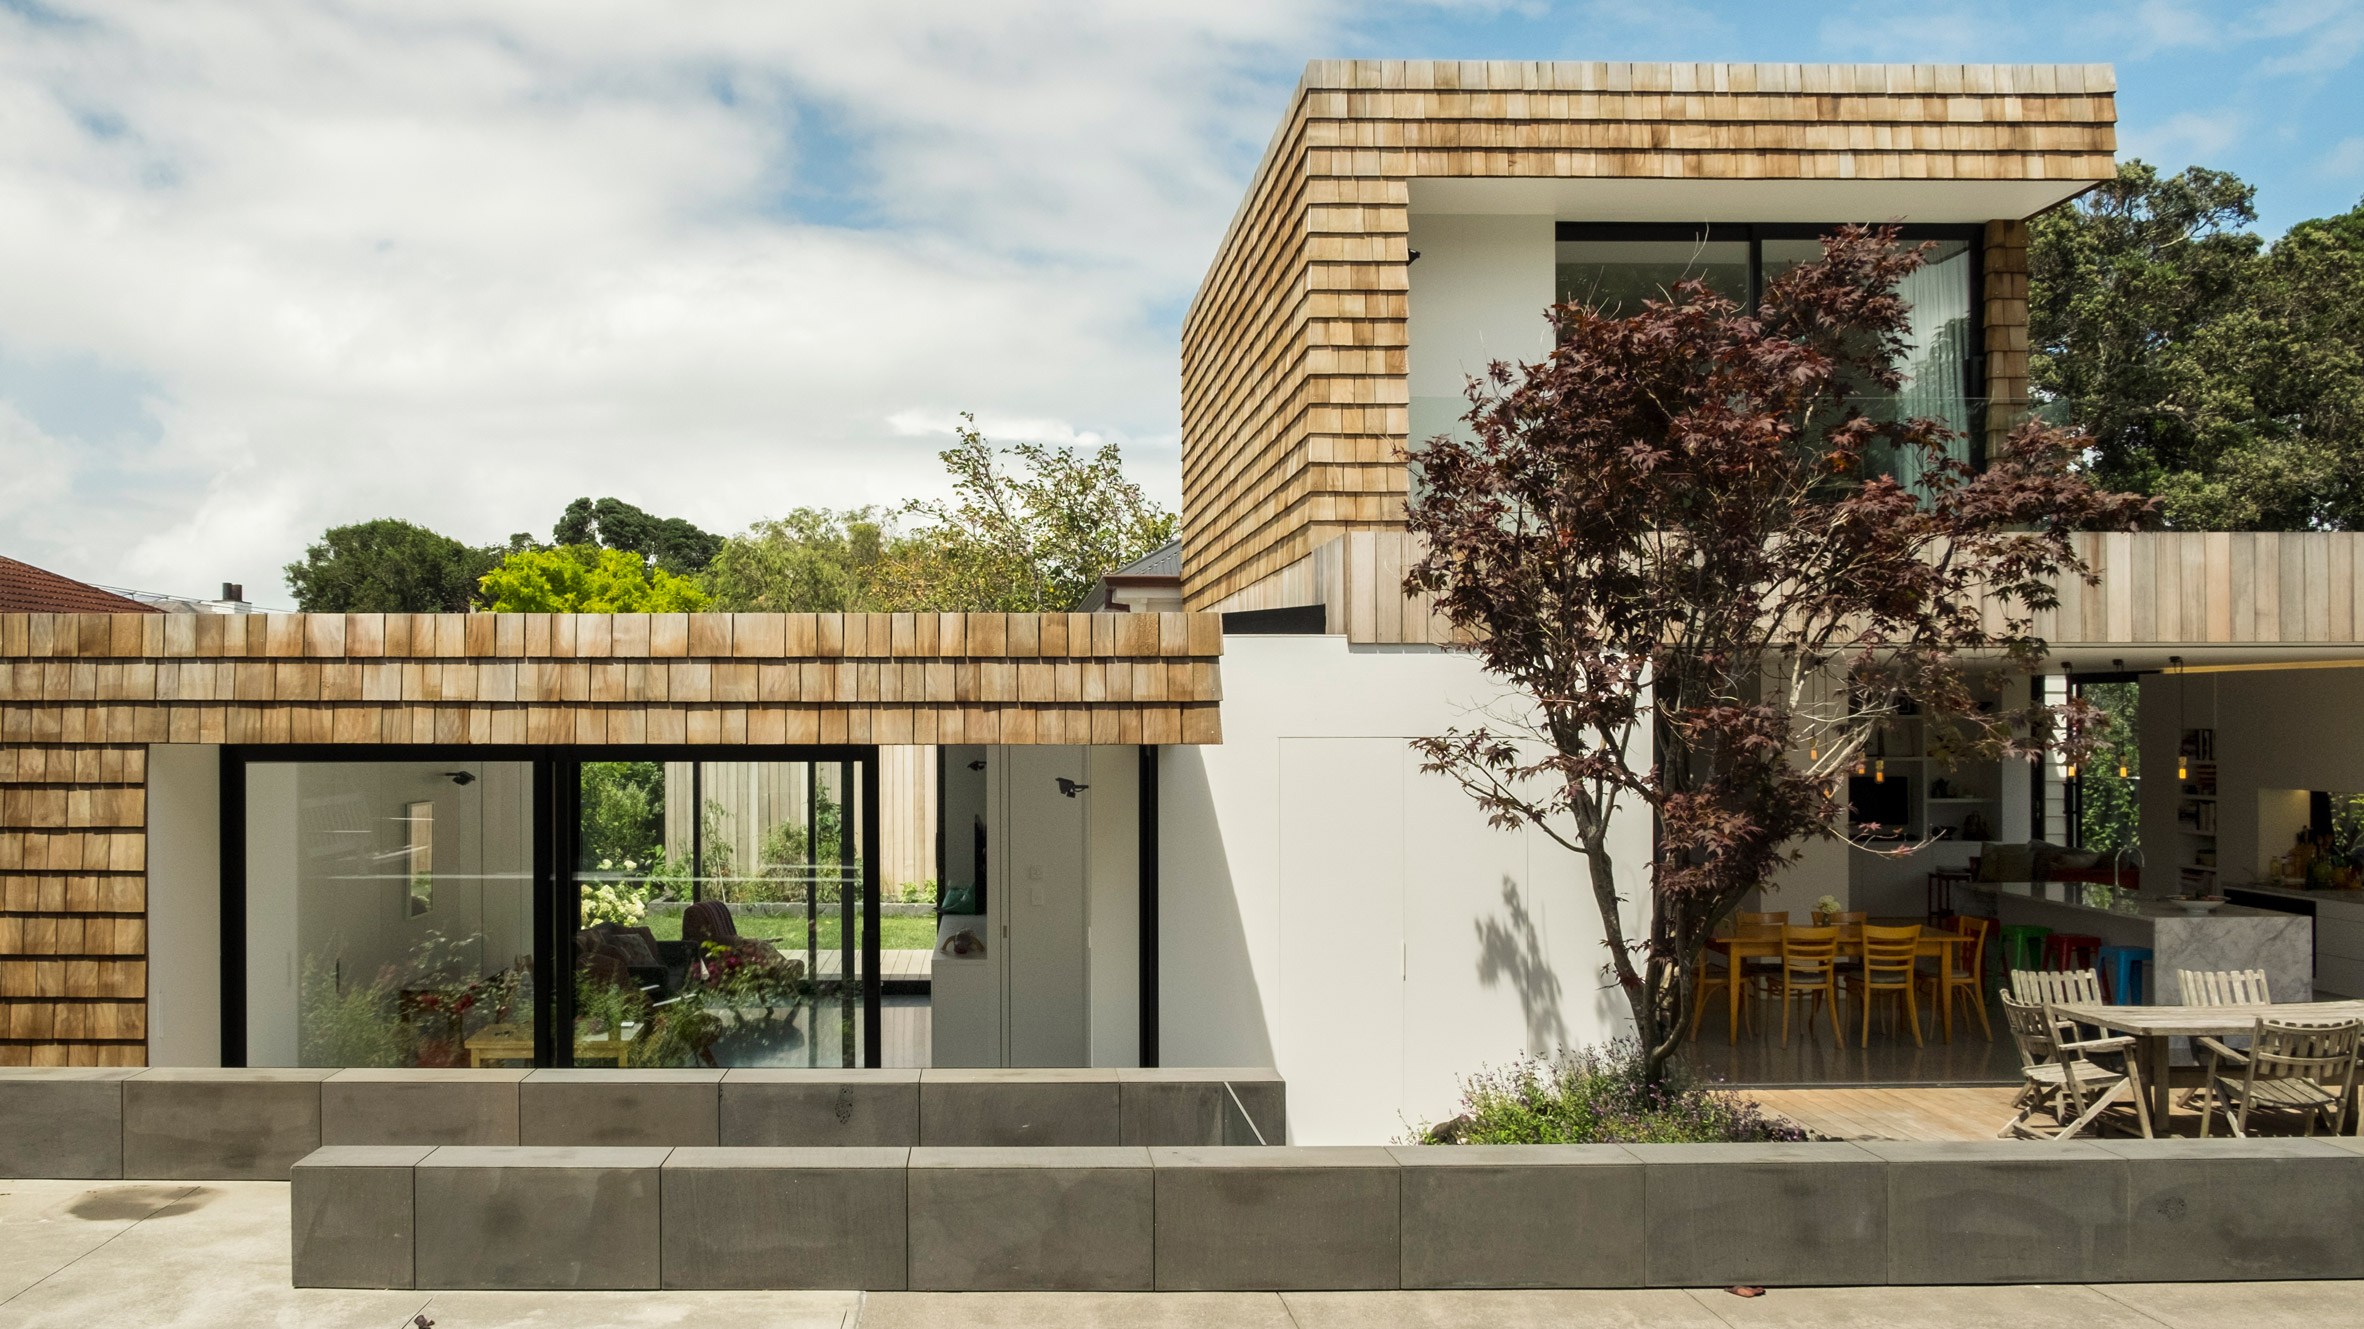 Gardens and terraces slot around timber extensions to